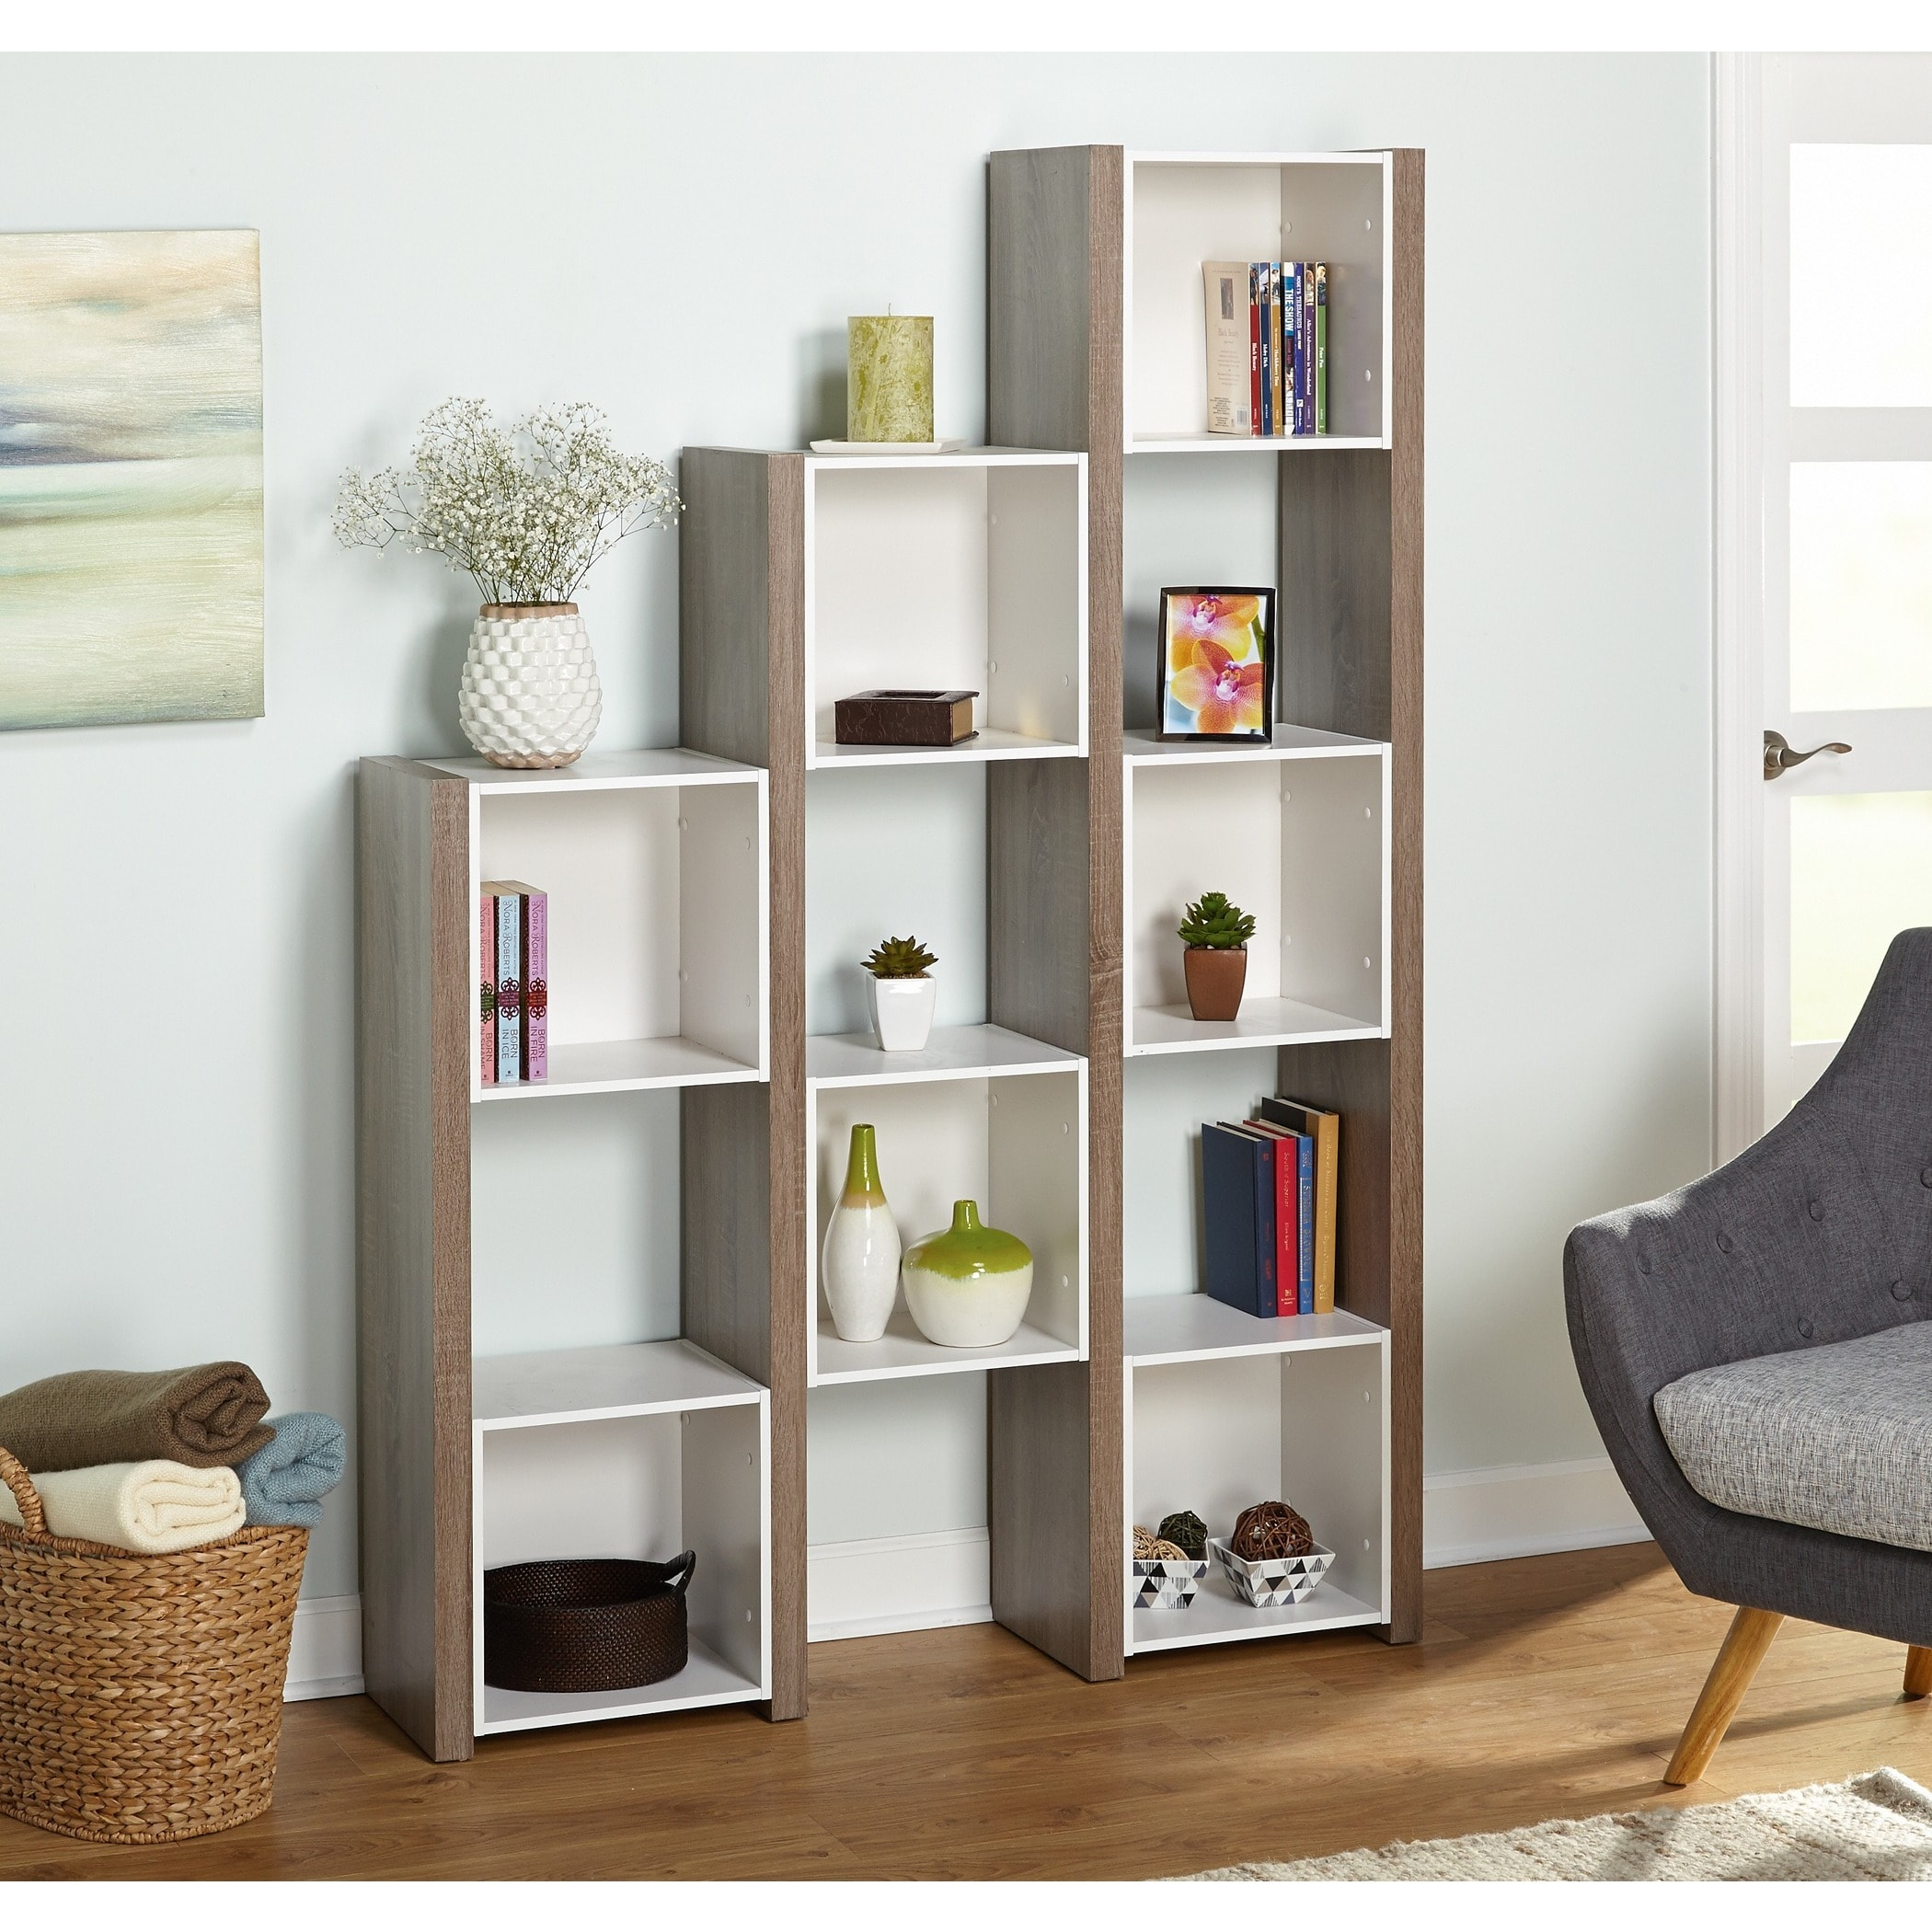 bookcase hayneedle com pin to it have ecleste divider room dividers